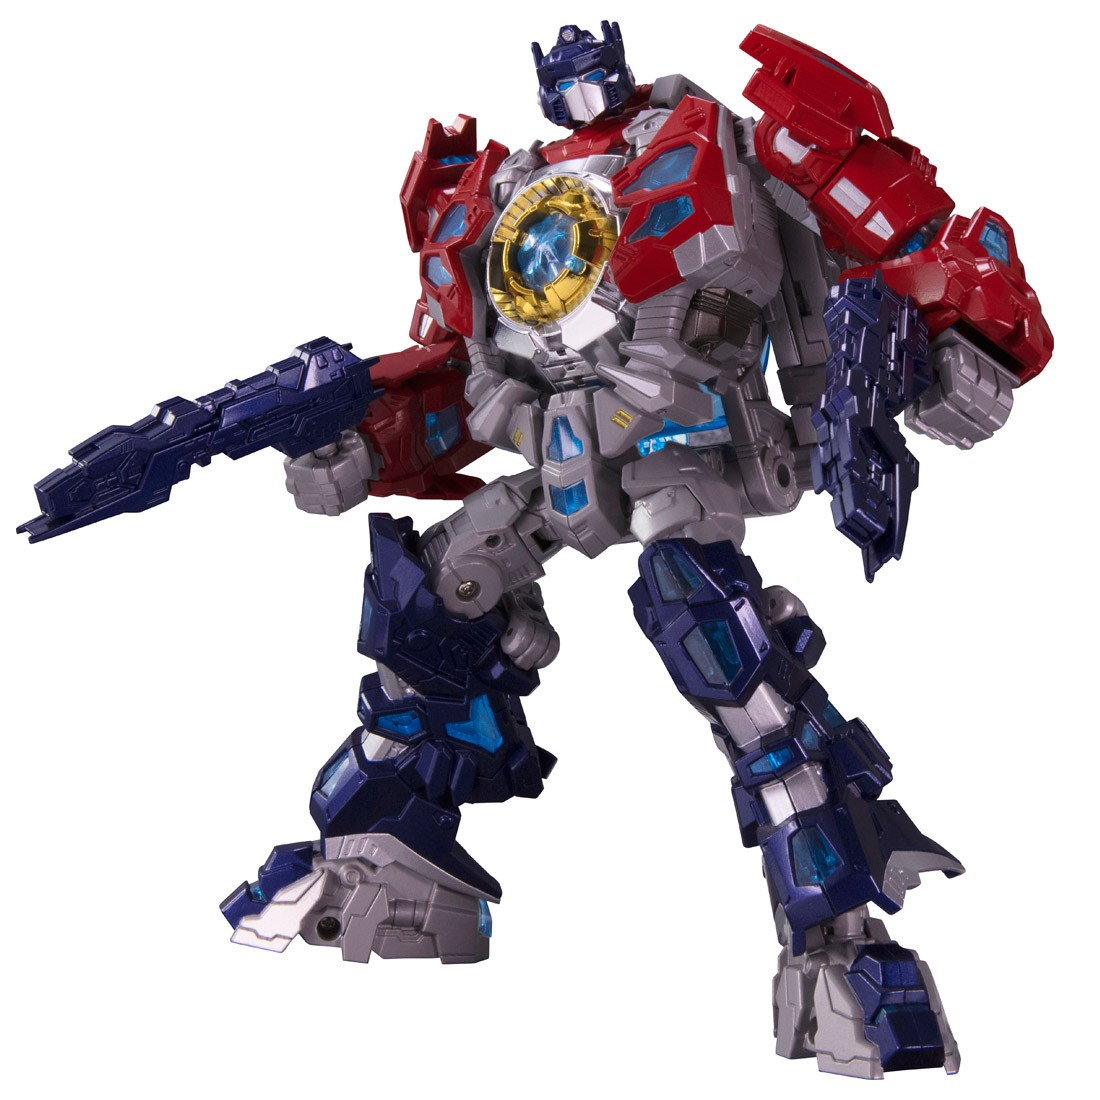 Transformers News: New Stock Photos and Price for G-Shock x Transformers Optimus Prime Resonant Mode